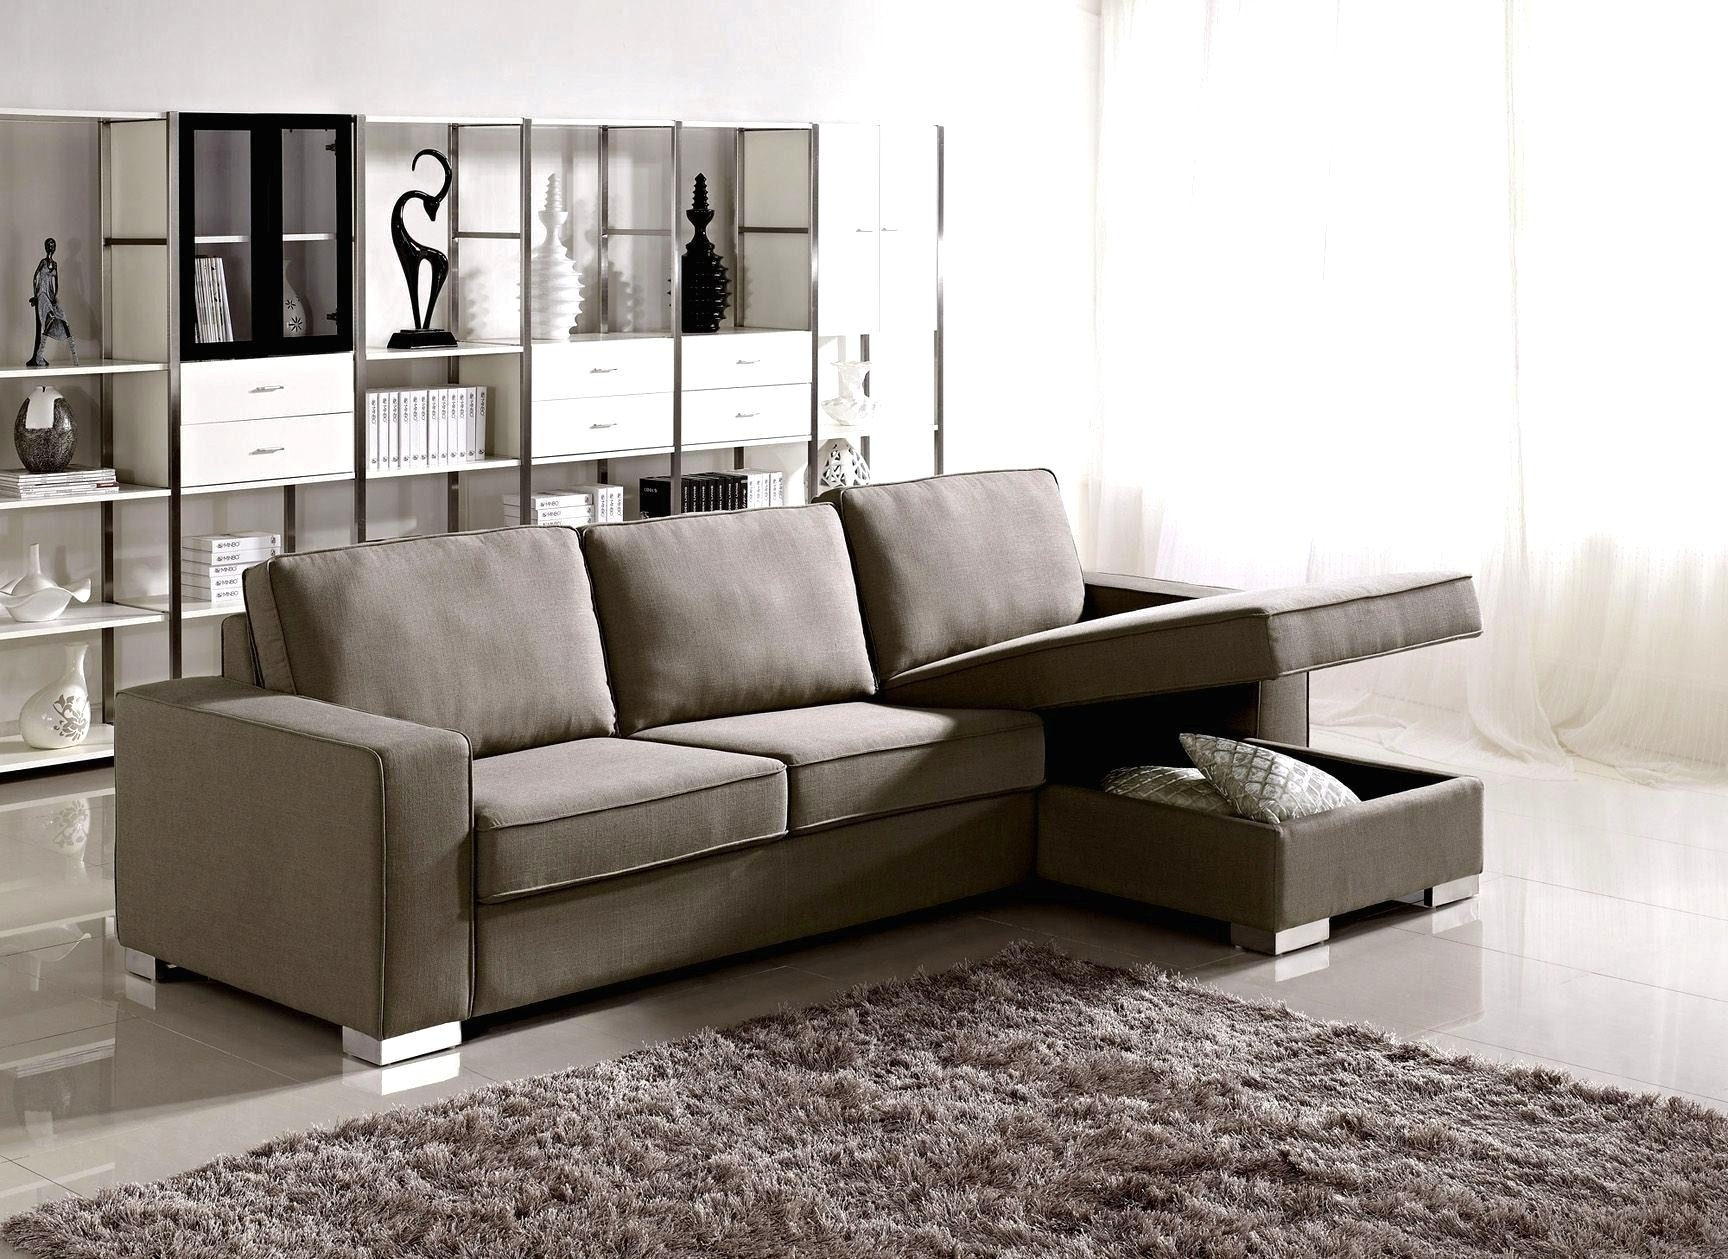 Inspirational Sectional Sofa San Antonio – Buildsimplehome Throughout Sectional Sofas In San Antonio (Image 4 of 10)